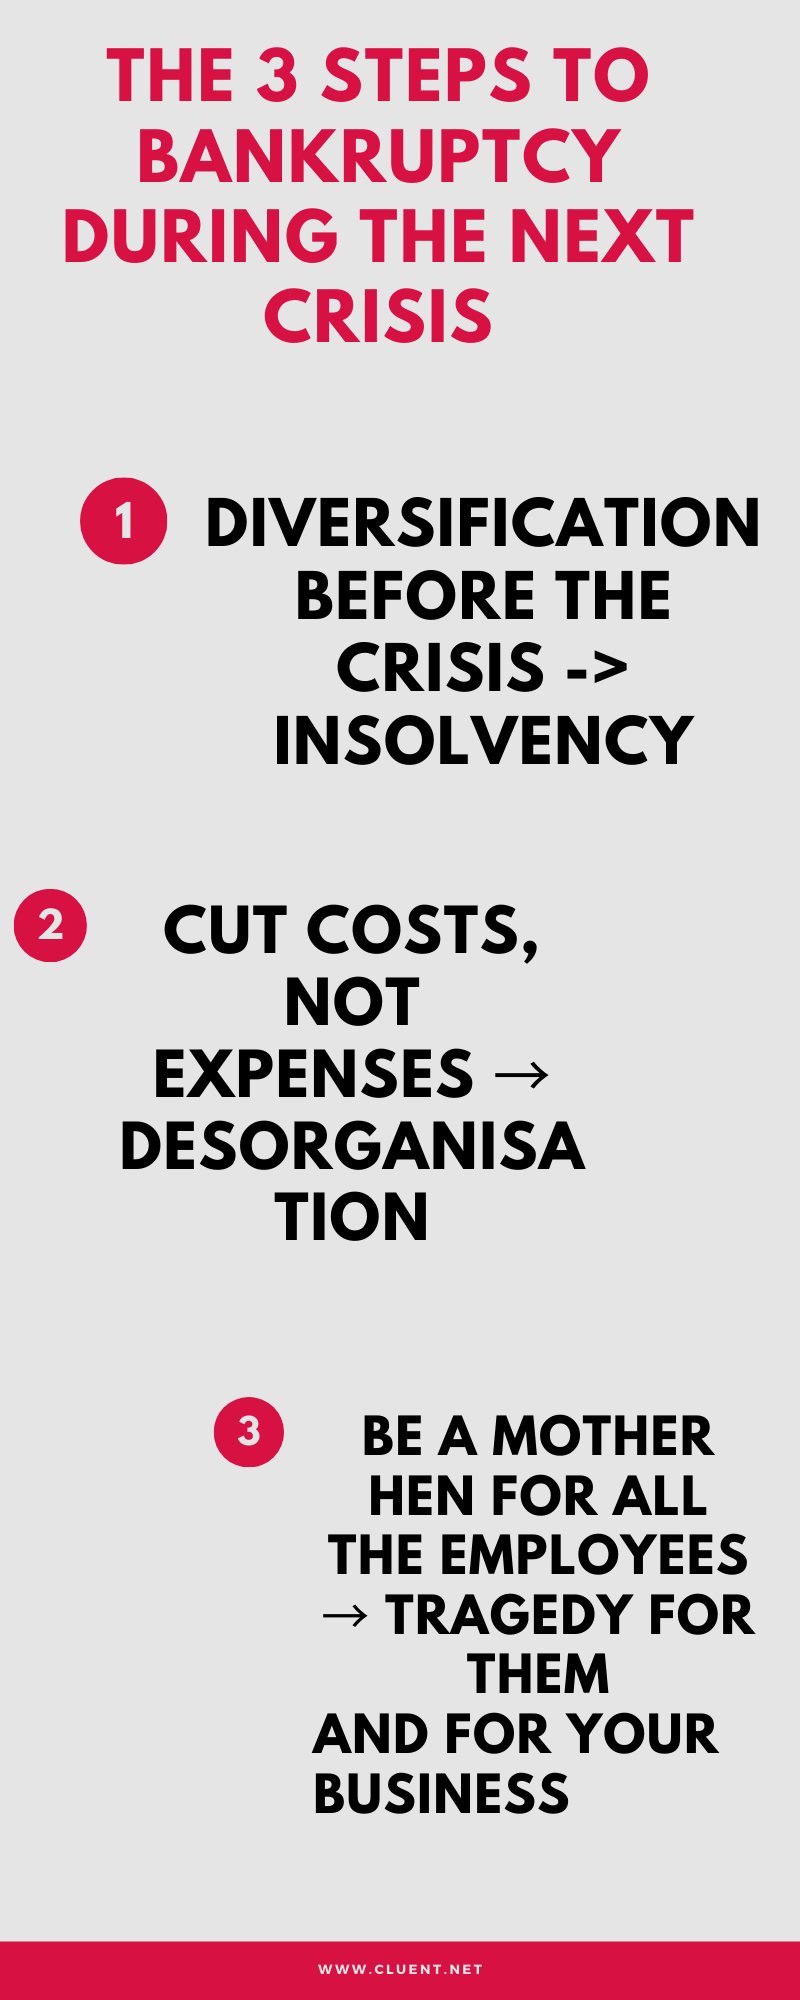 bankruptcy during crisis